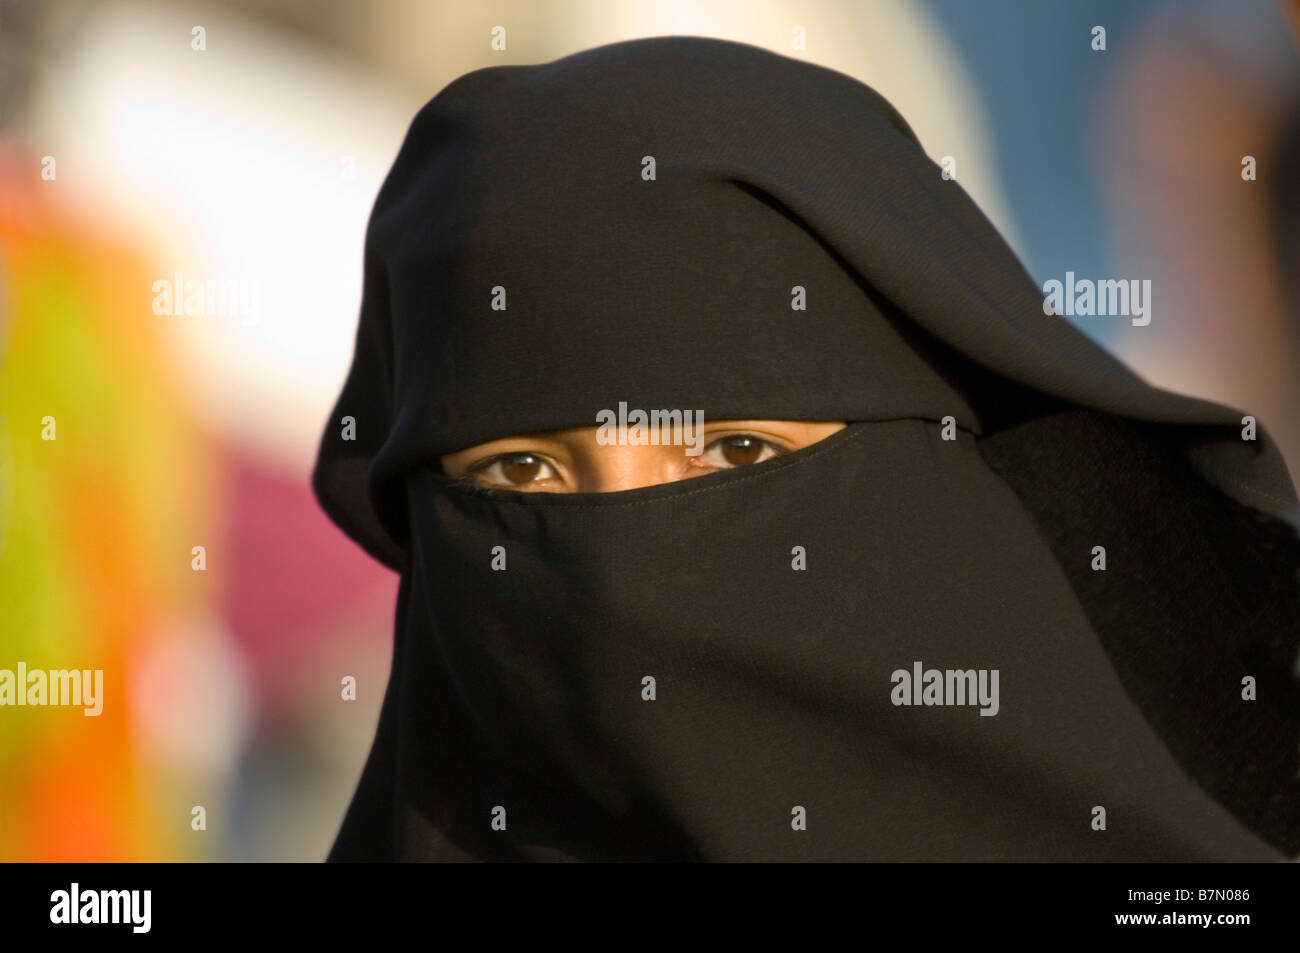 Young local Muslim lady wearing a black burka completely covering her face except the eyes. - Stock Image